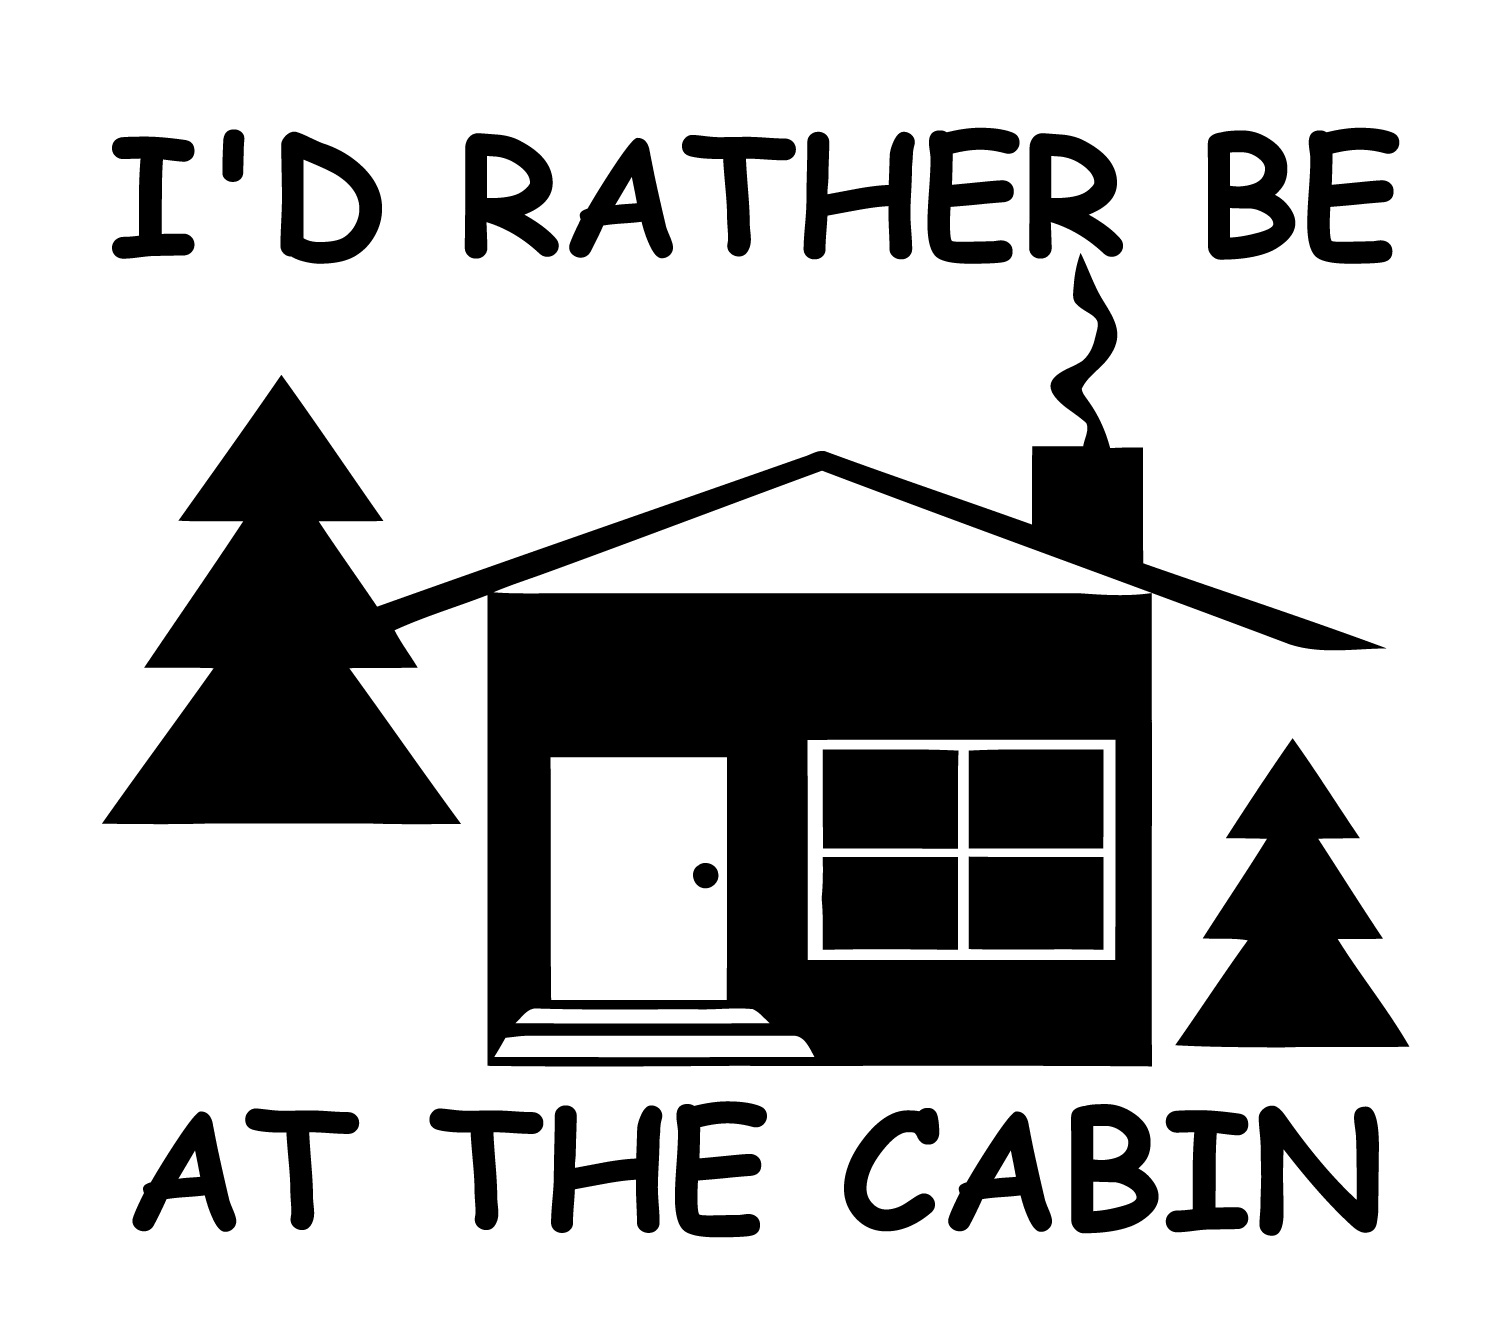 I'd Rather Be At The Cabin Sticker Decal